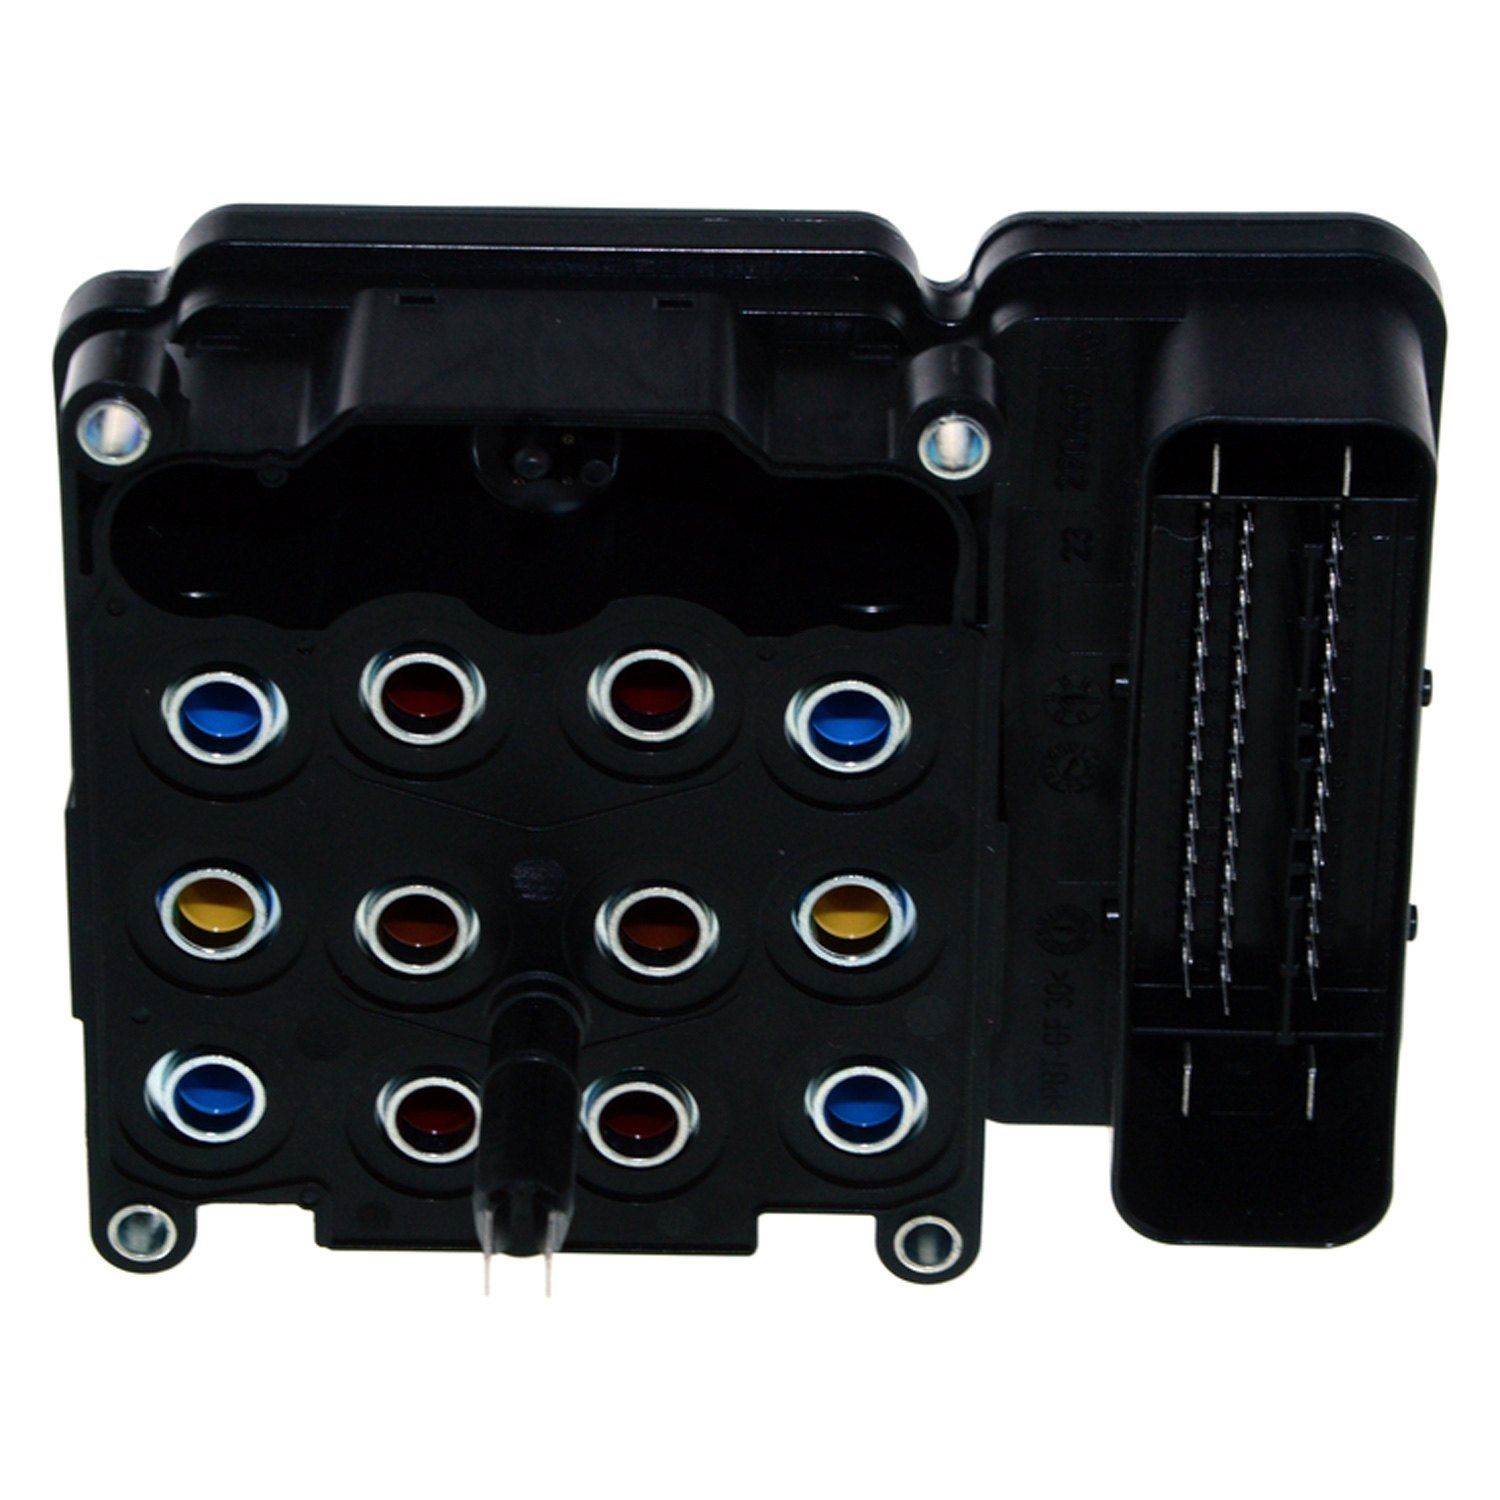 Chevy Semi Truck >> ACDelco® - Chevy HHR with Active Brake Control (JL4) 2009 GM Original Equipment™ ABS Control Module